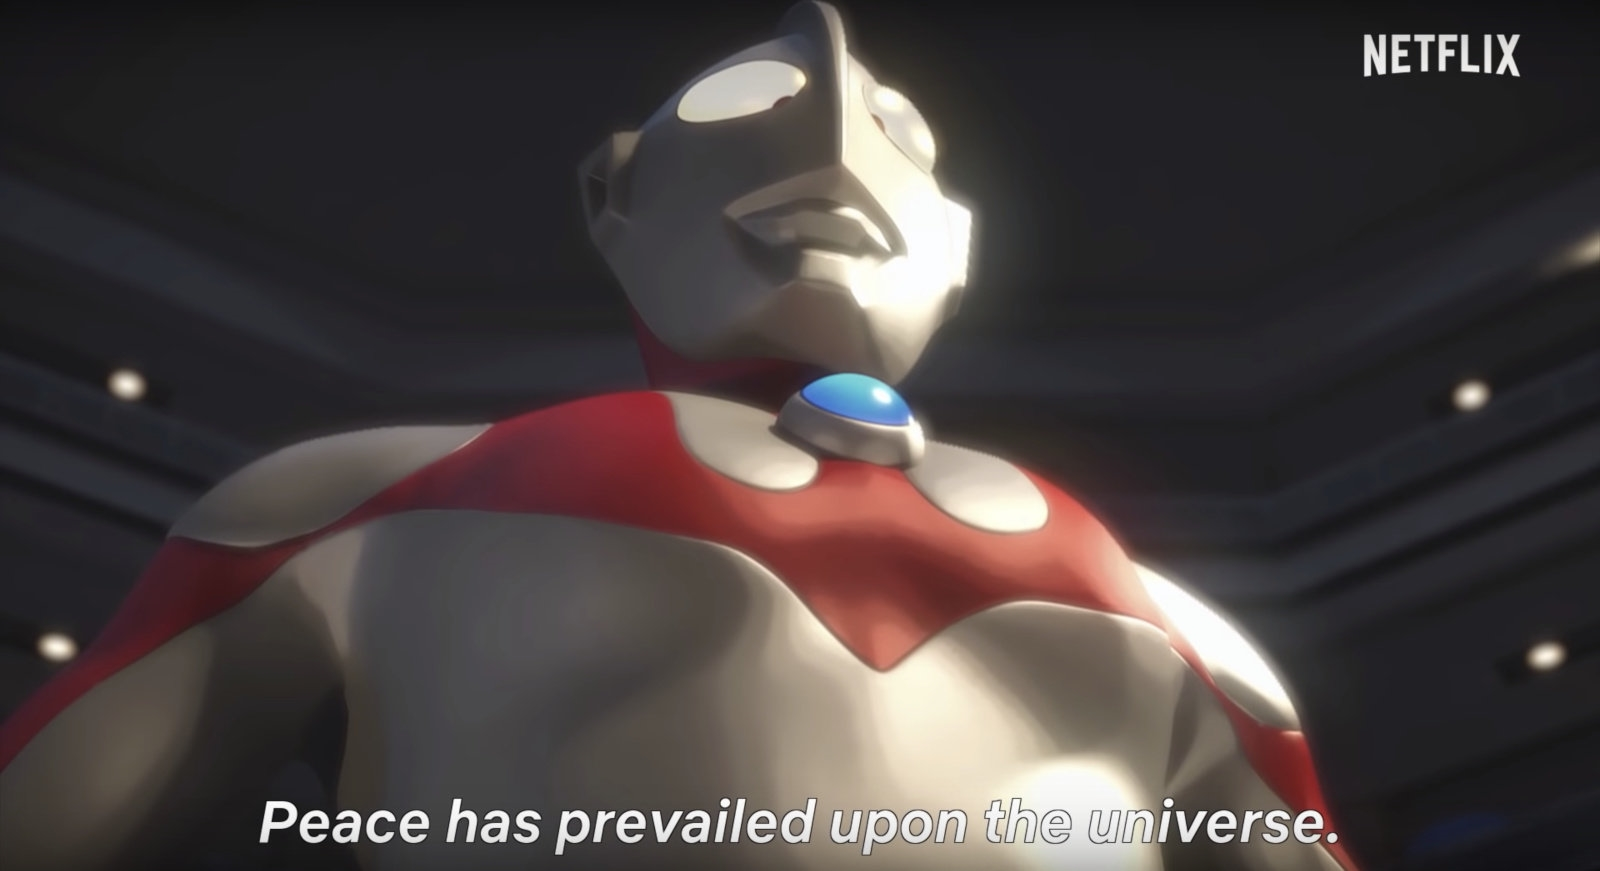 Netflix shows off its 'Ultraman' CG anime series in new trailer | DeviceDaily.com